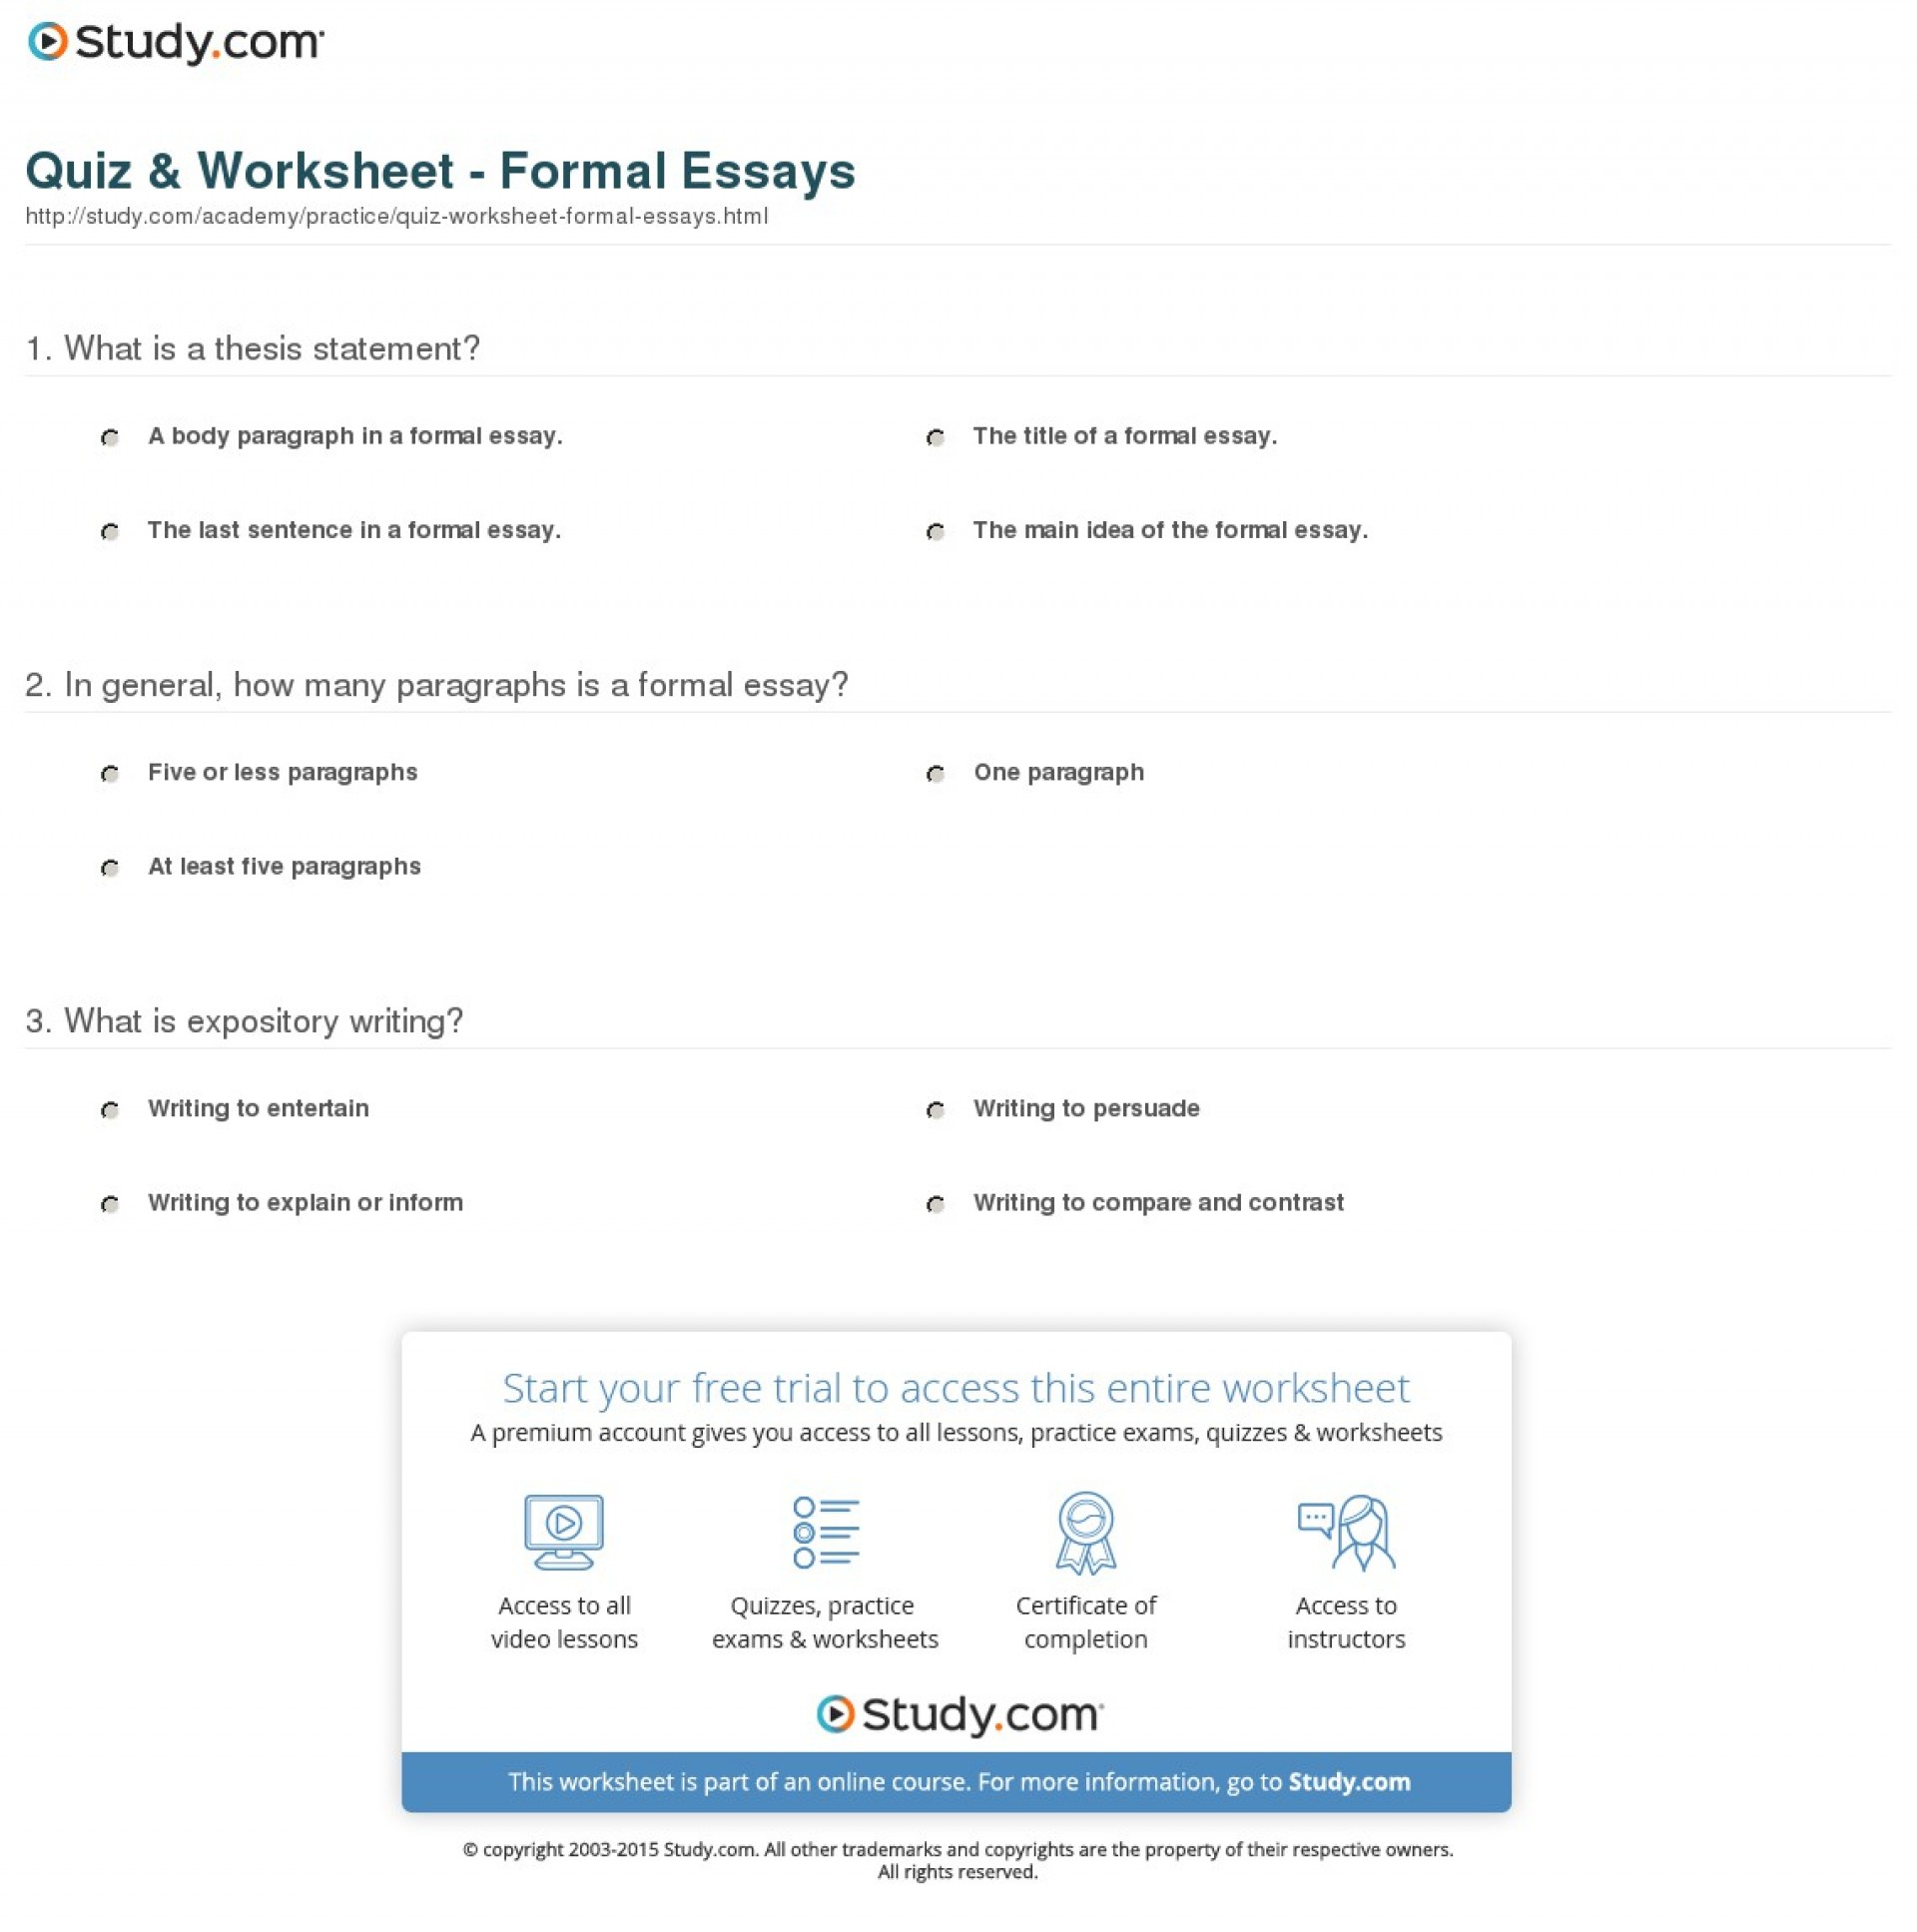 023 Essay Example Quiz Worksheet Formal Essays How Many Paragraphsre In Formidable Paragraphs Are A Argumentative Body Should Narrative Have Persuasive 1920